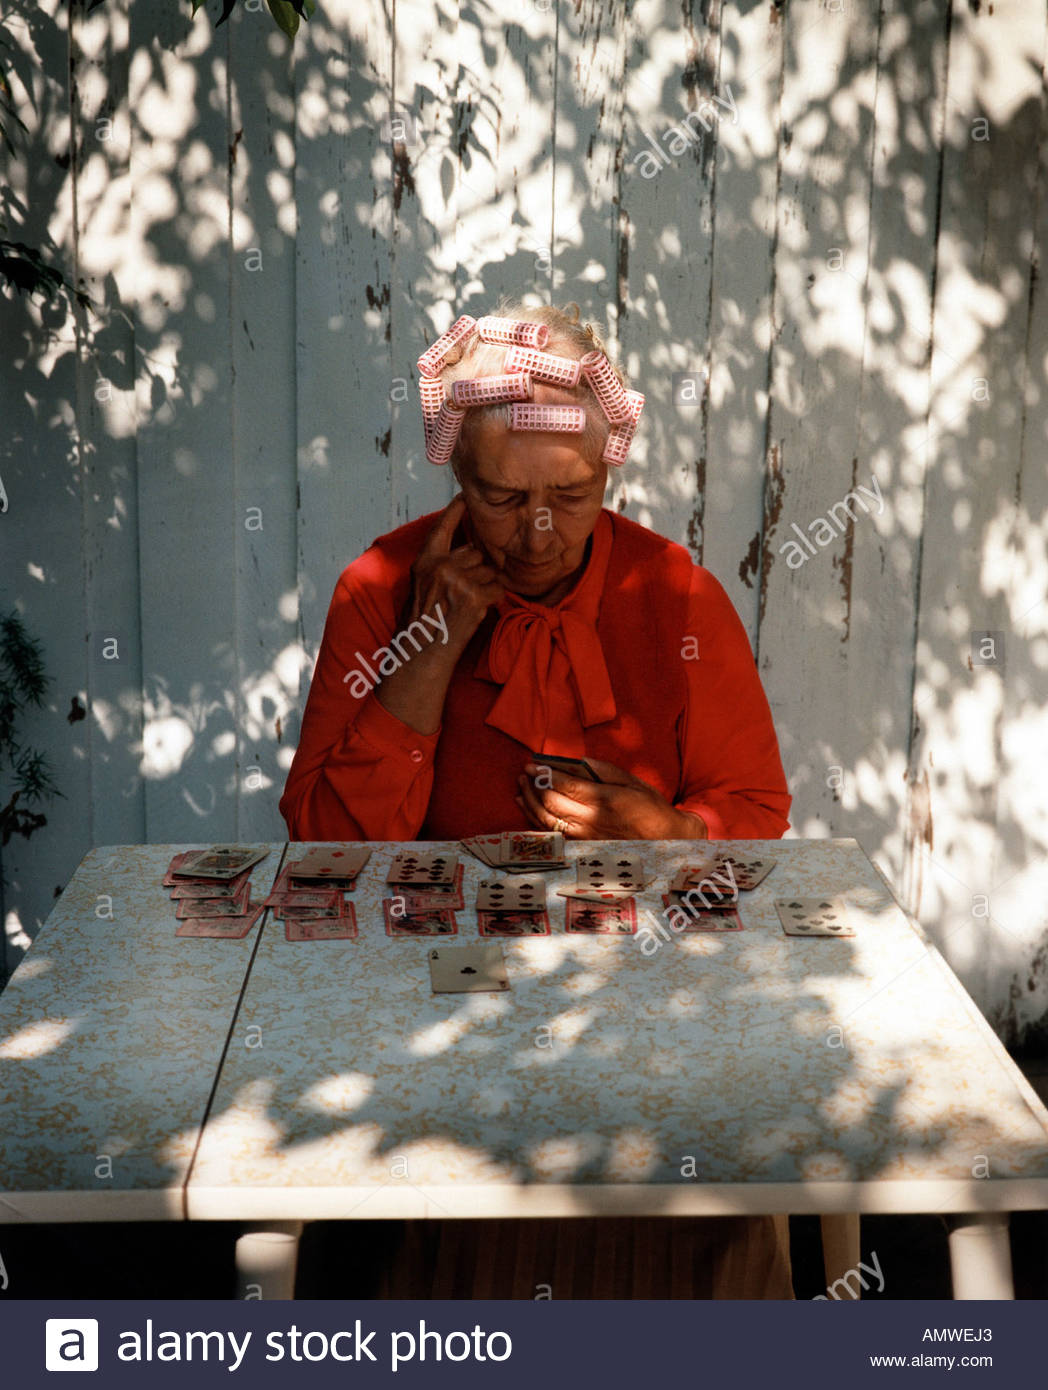 elderly woman plying cards outside - Stock Image